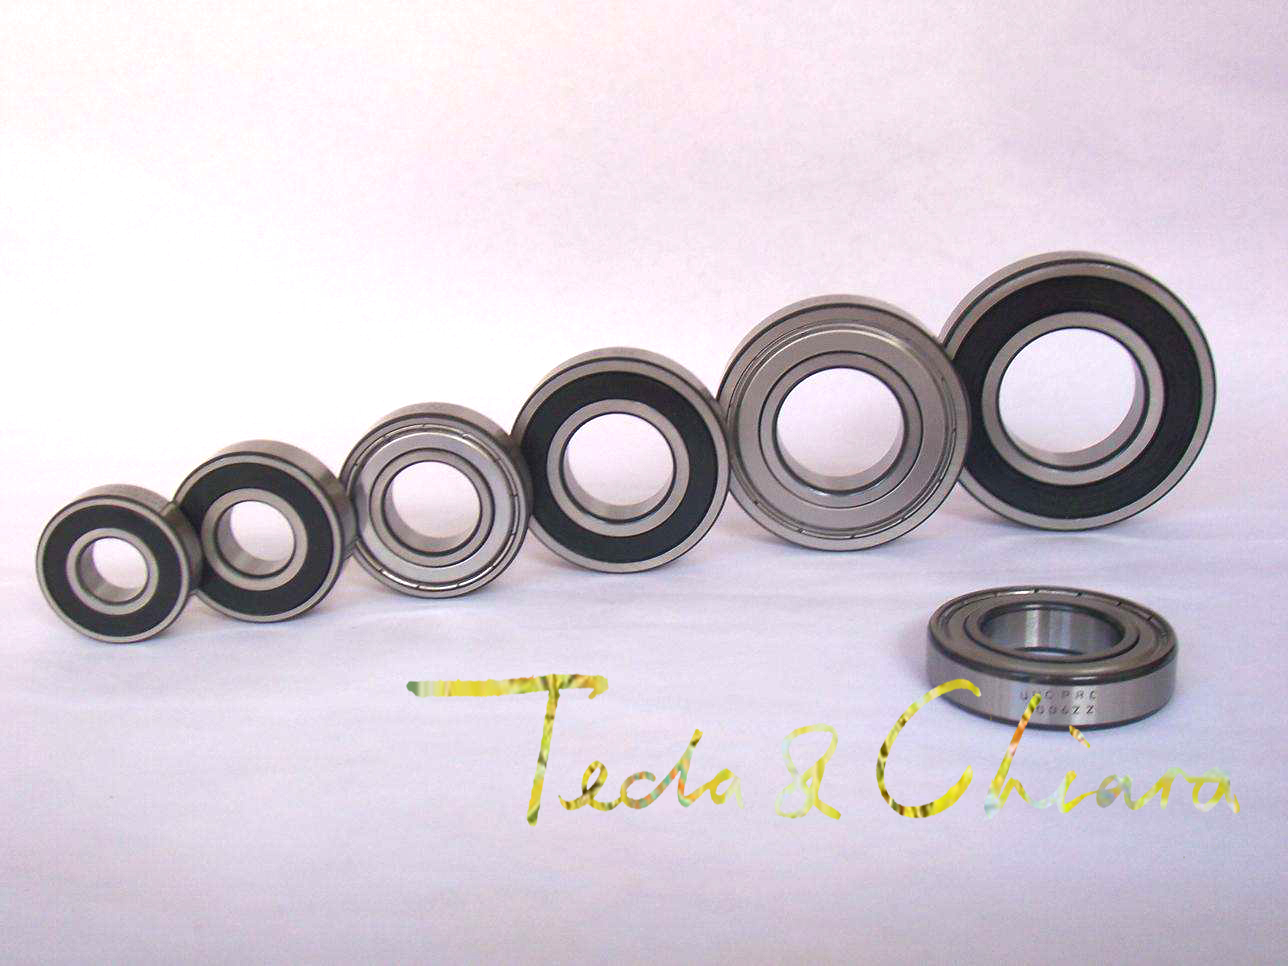 688 688ZZ 688RS 688-2Z 688Z 688-2RS ZZ RS RZ 2RZ Deep Groove Ball Bearings 8 x 16 x 5mm High Quality free shipping 50pcs lot miniature bearing 688 688 2rs 688 rs l1680 8x16x5 mm high precise bearing usded for toy machine